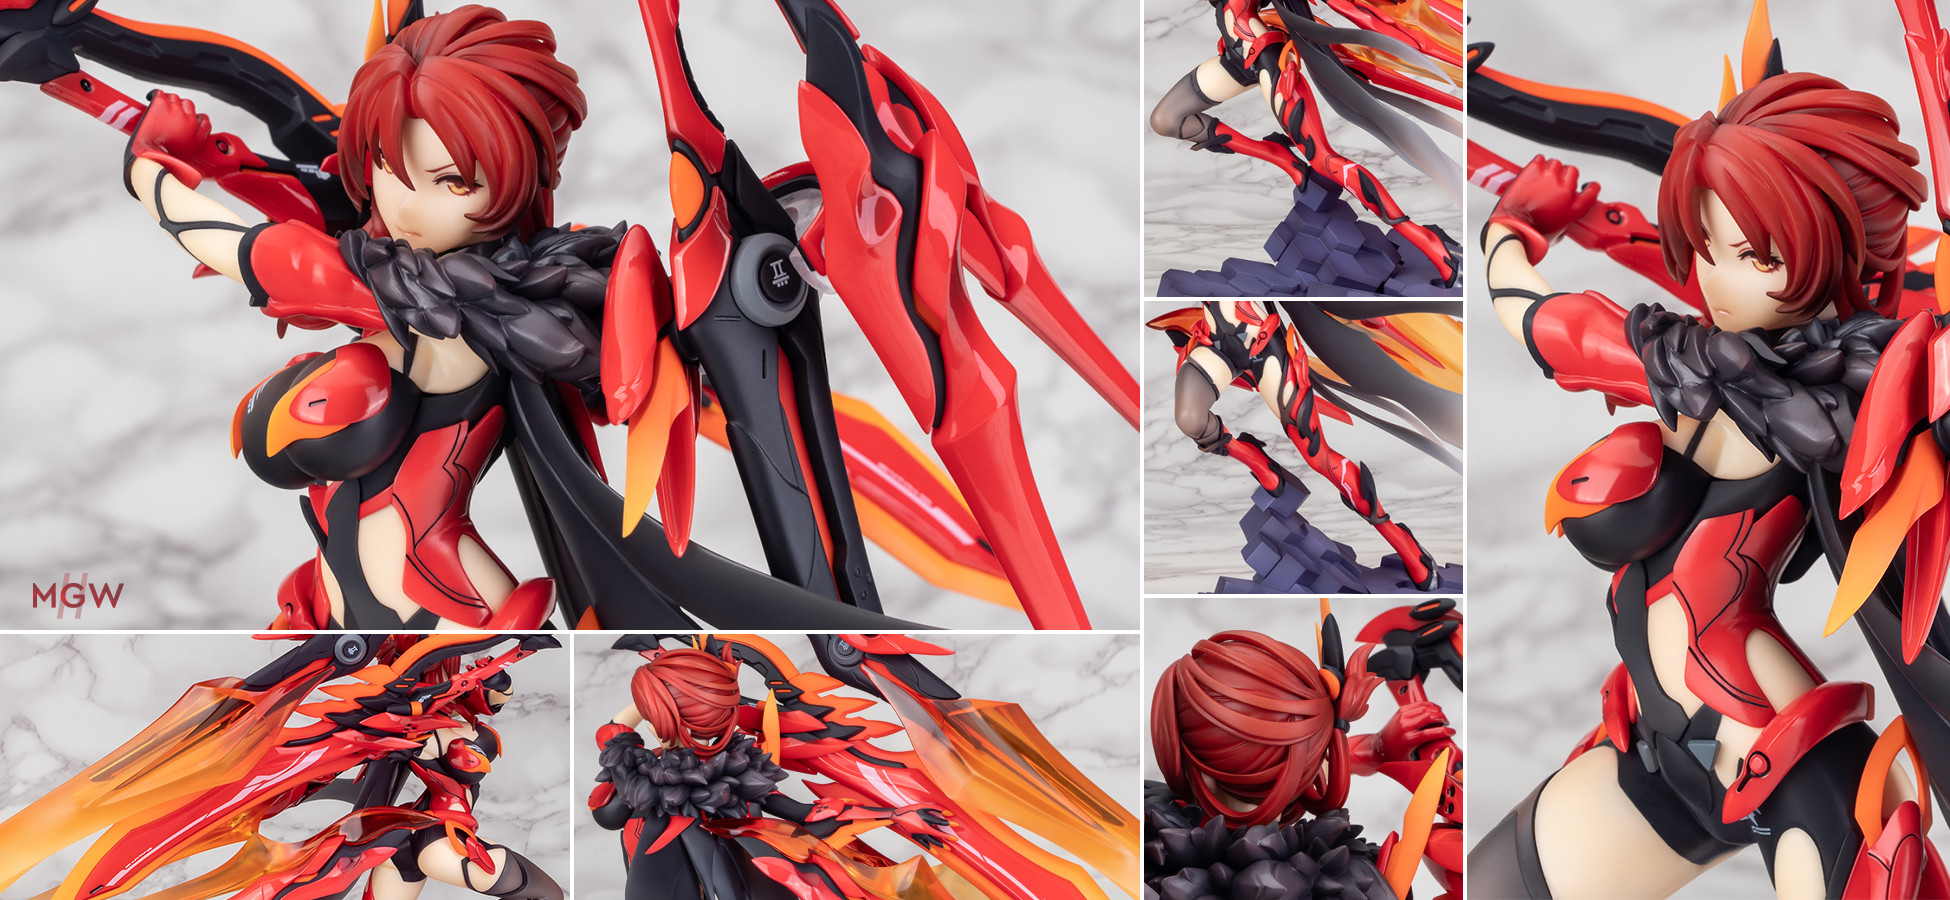 Murata Himeko Vermilion Knight Eclipse Ver. by APEX x miHoYo from Houkai 3rd Honkai 3rd 1 MyGrailWatch Anime Figure Guide